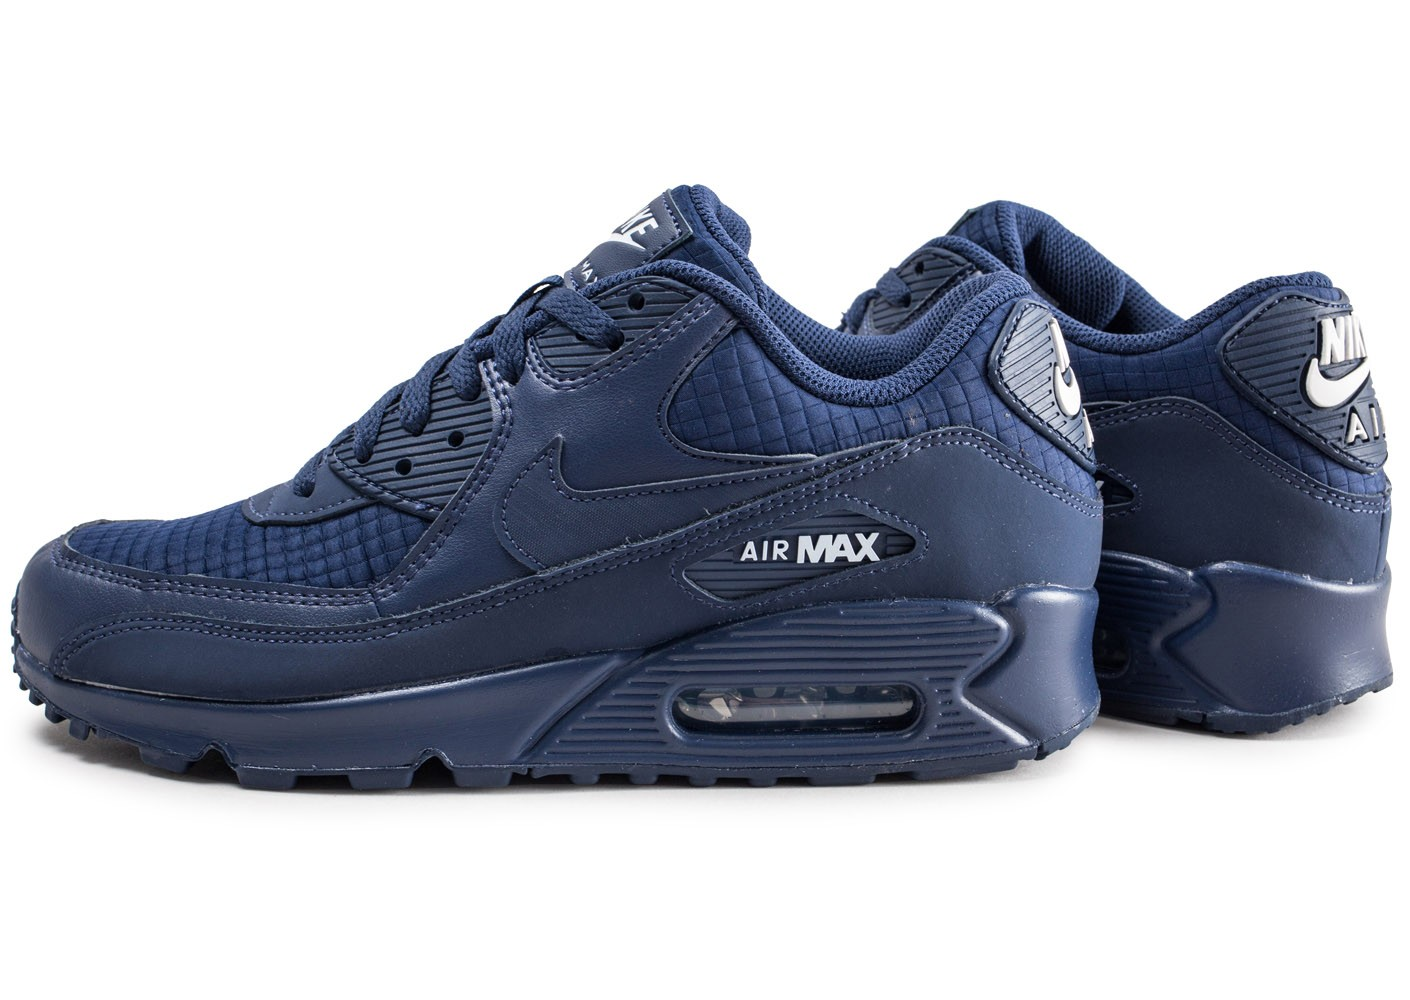 best supplier classic styles another chance Nike Air Max 90 Essential bleu marine - Chaussures Baskets homme ...